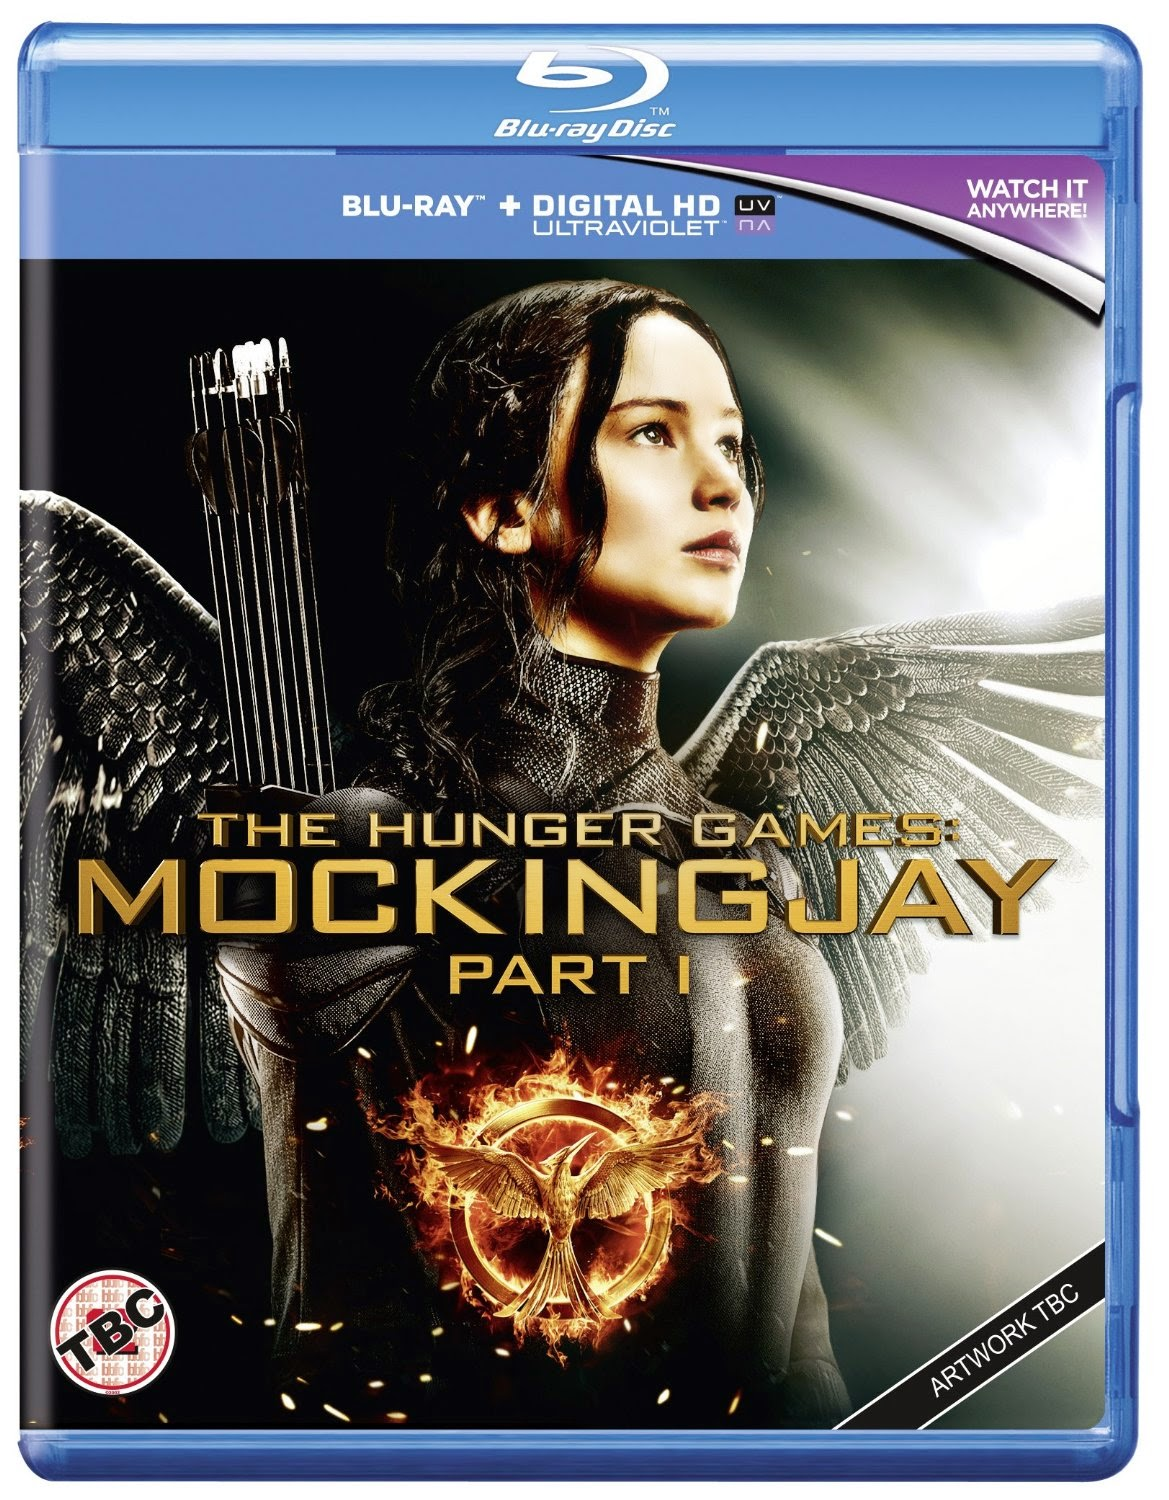 The Hunger Games: Mockingjay – Part 2 Release Date – Release Date